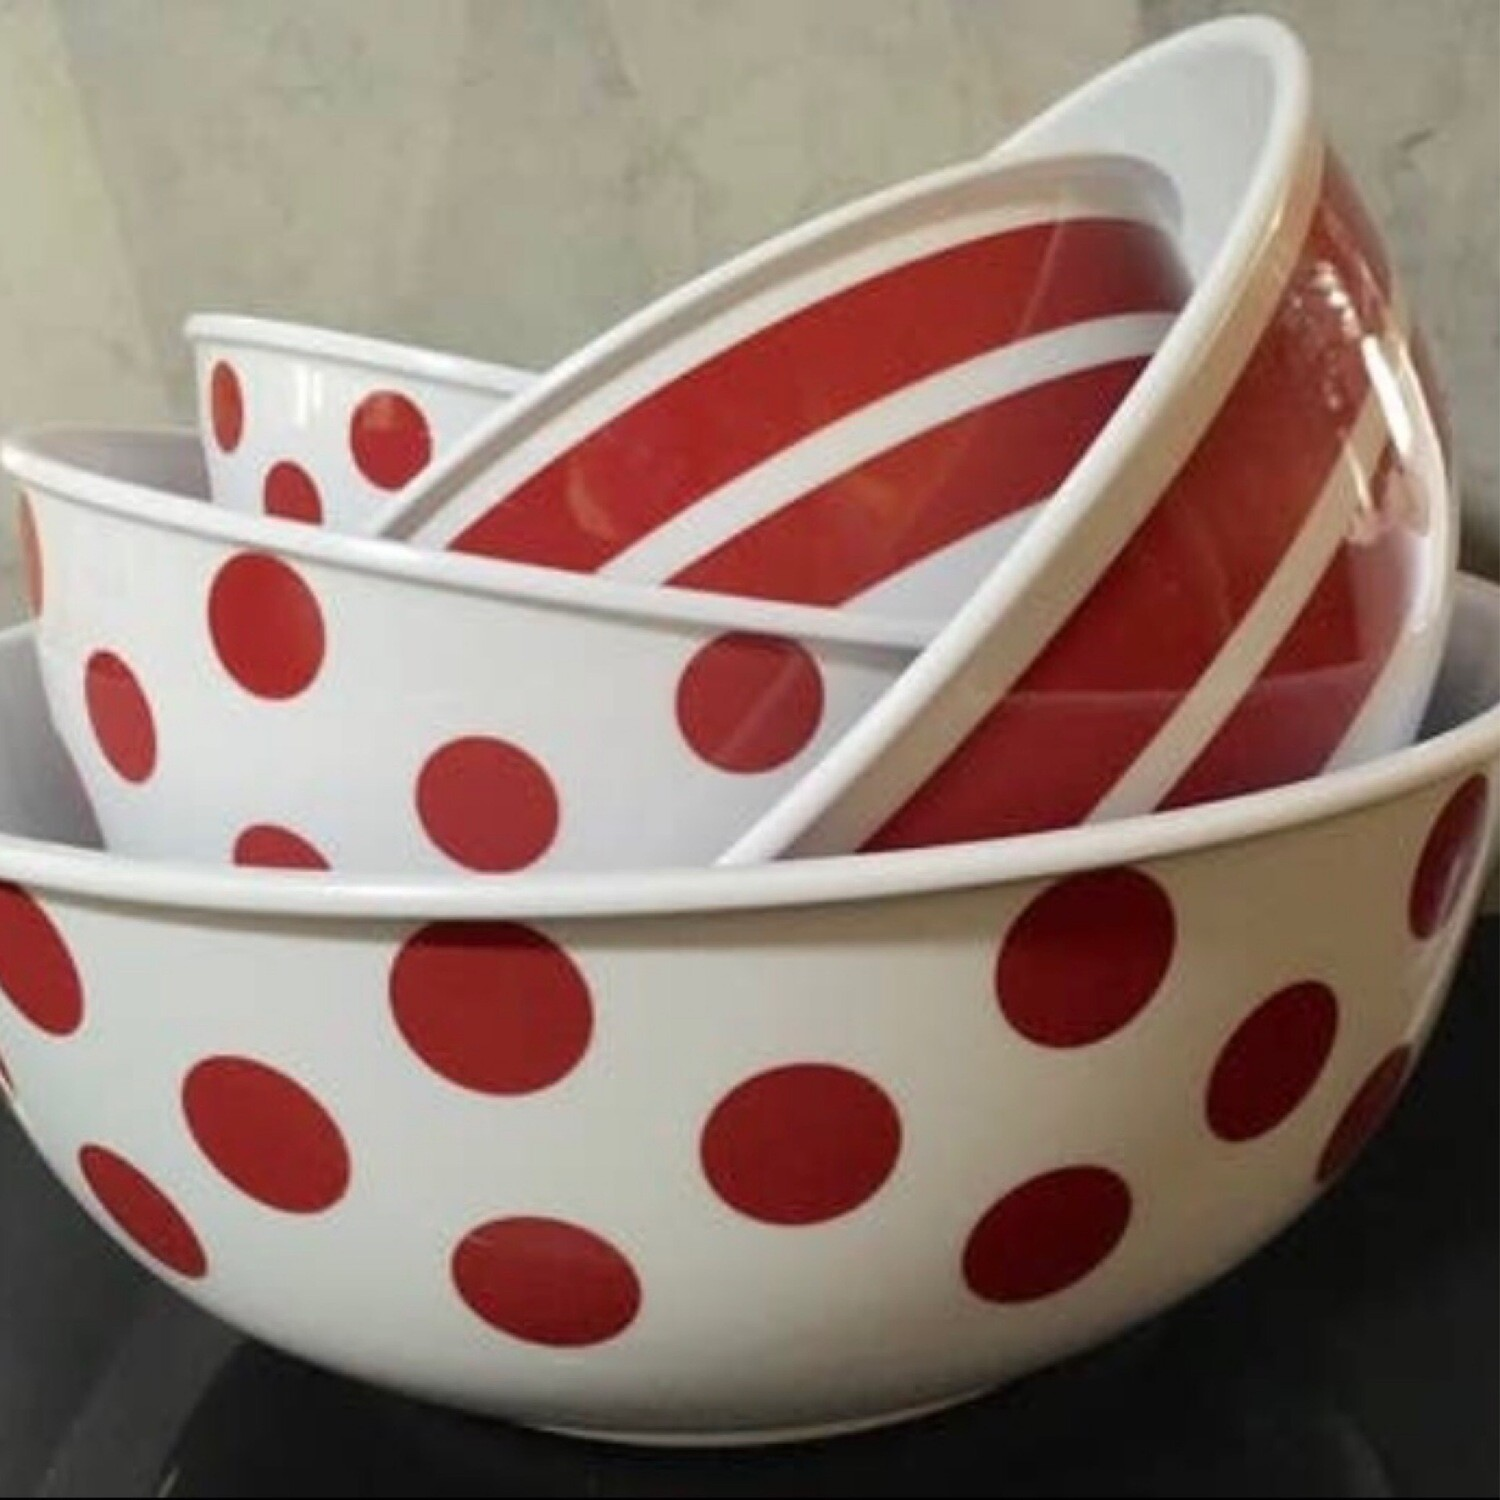 Set of 5 Red Polka Dot and Stripes Mixing Bowls